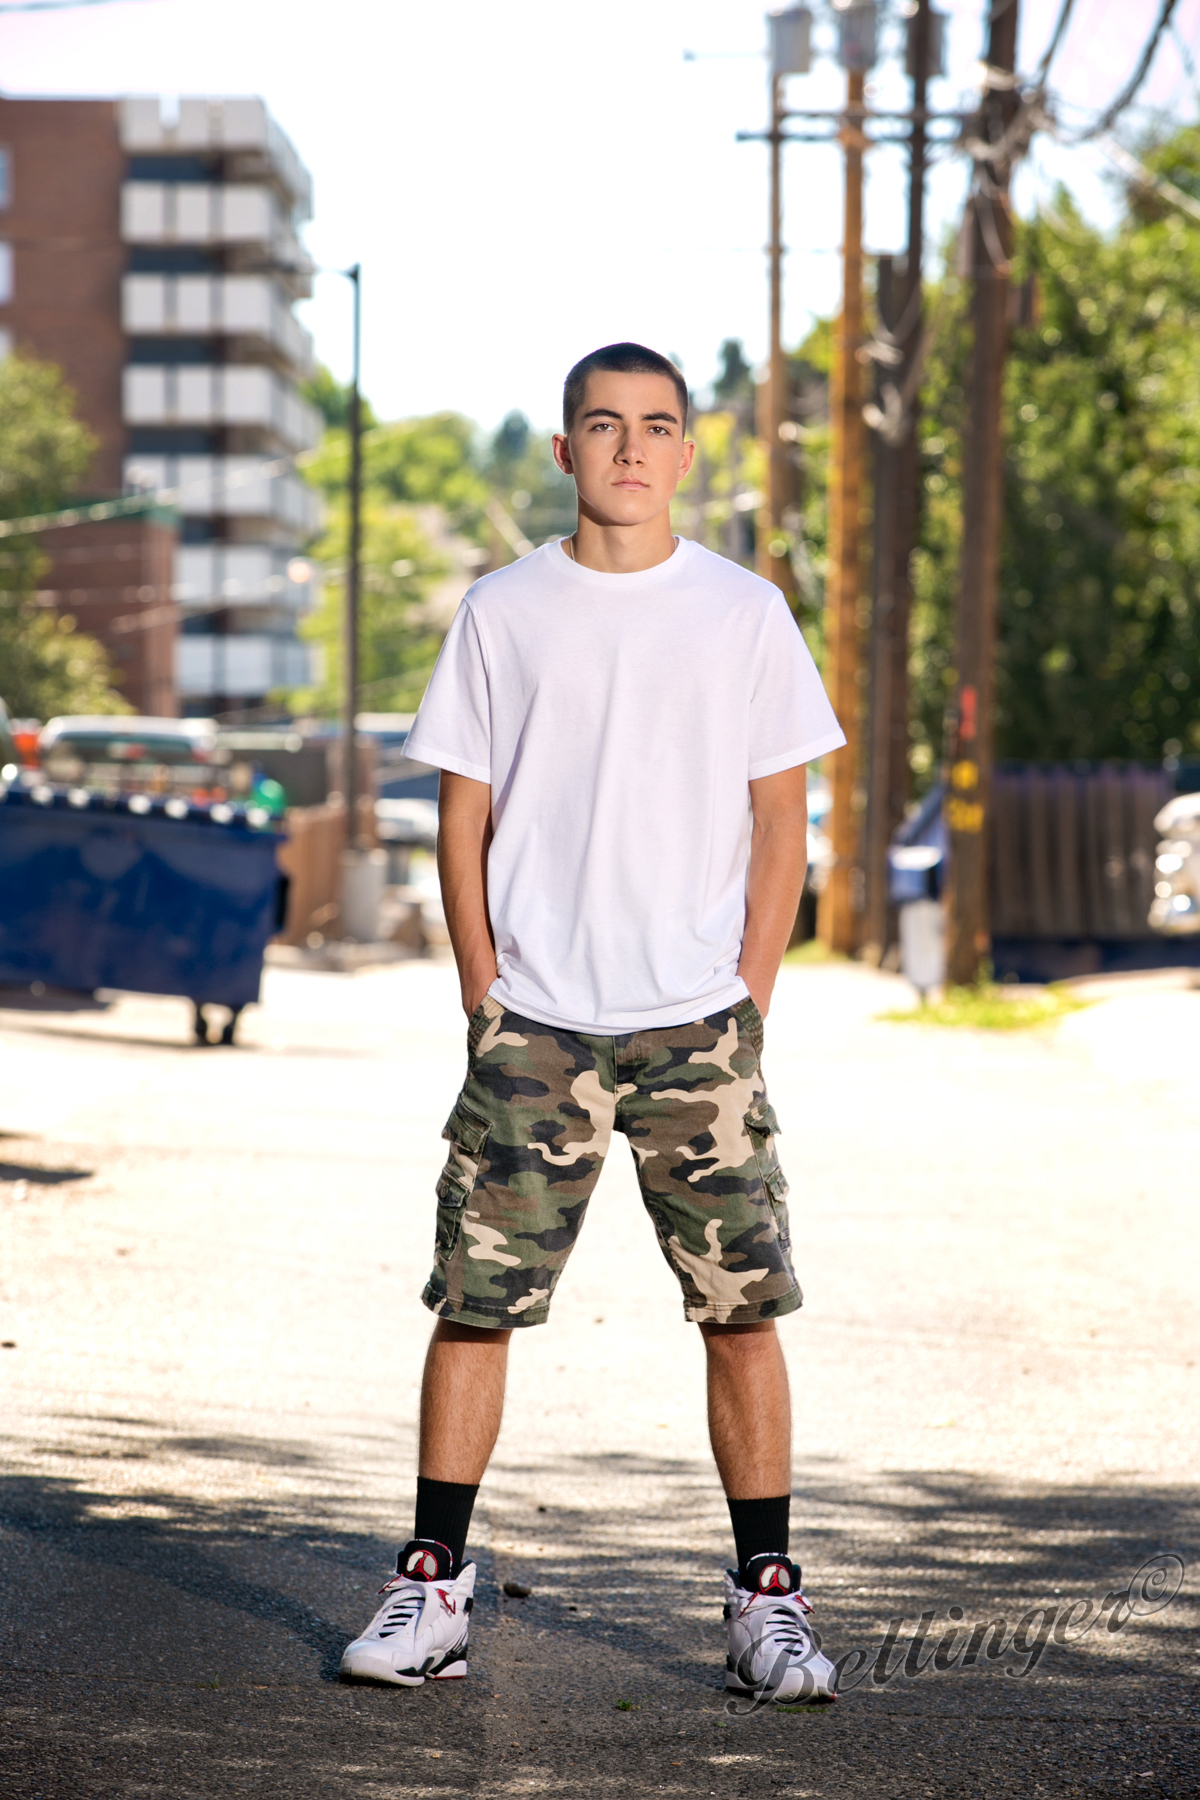 - Christian wants to be an auto body specialist or Military Police. Maybe you can do both?